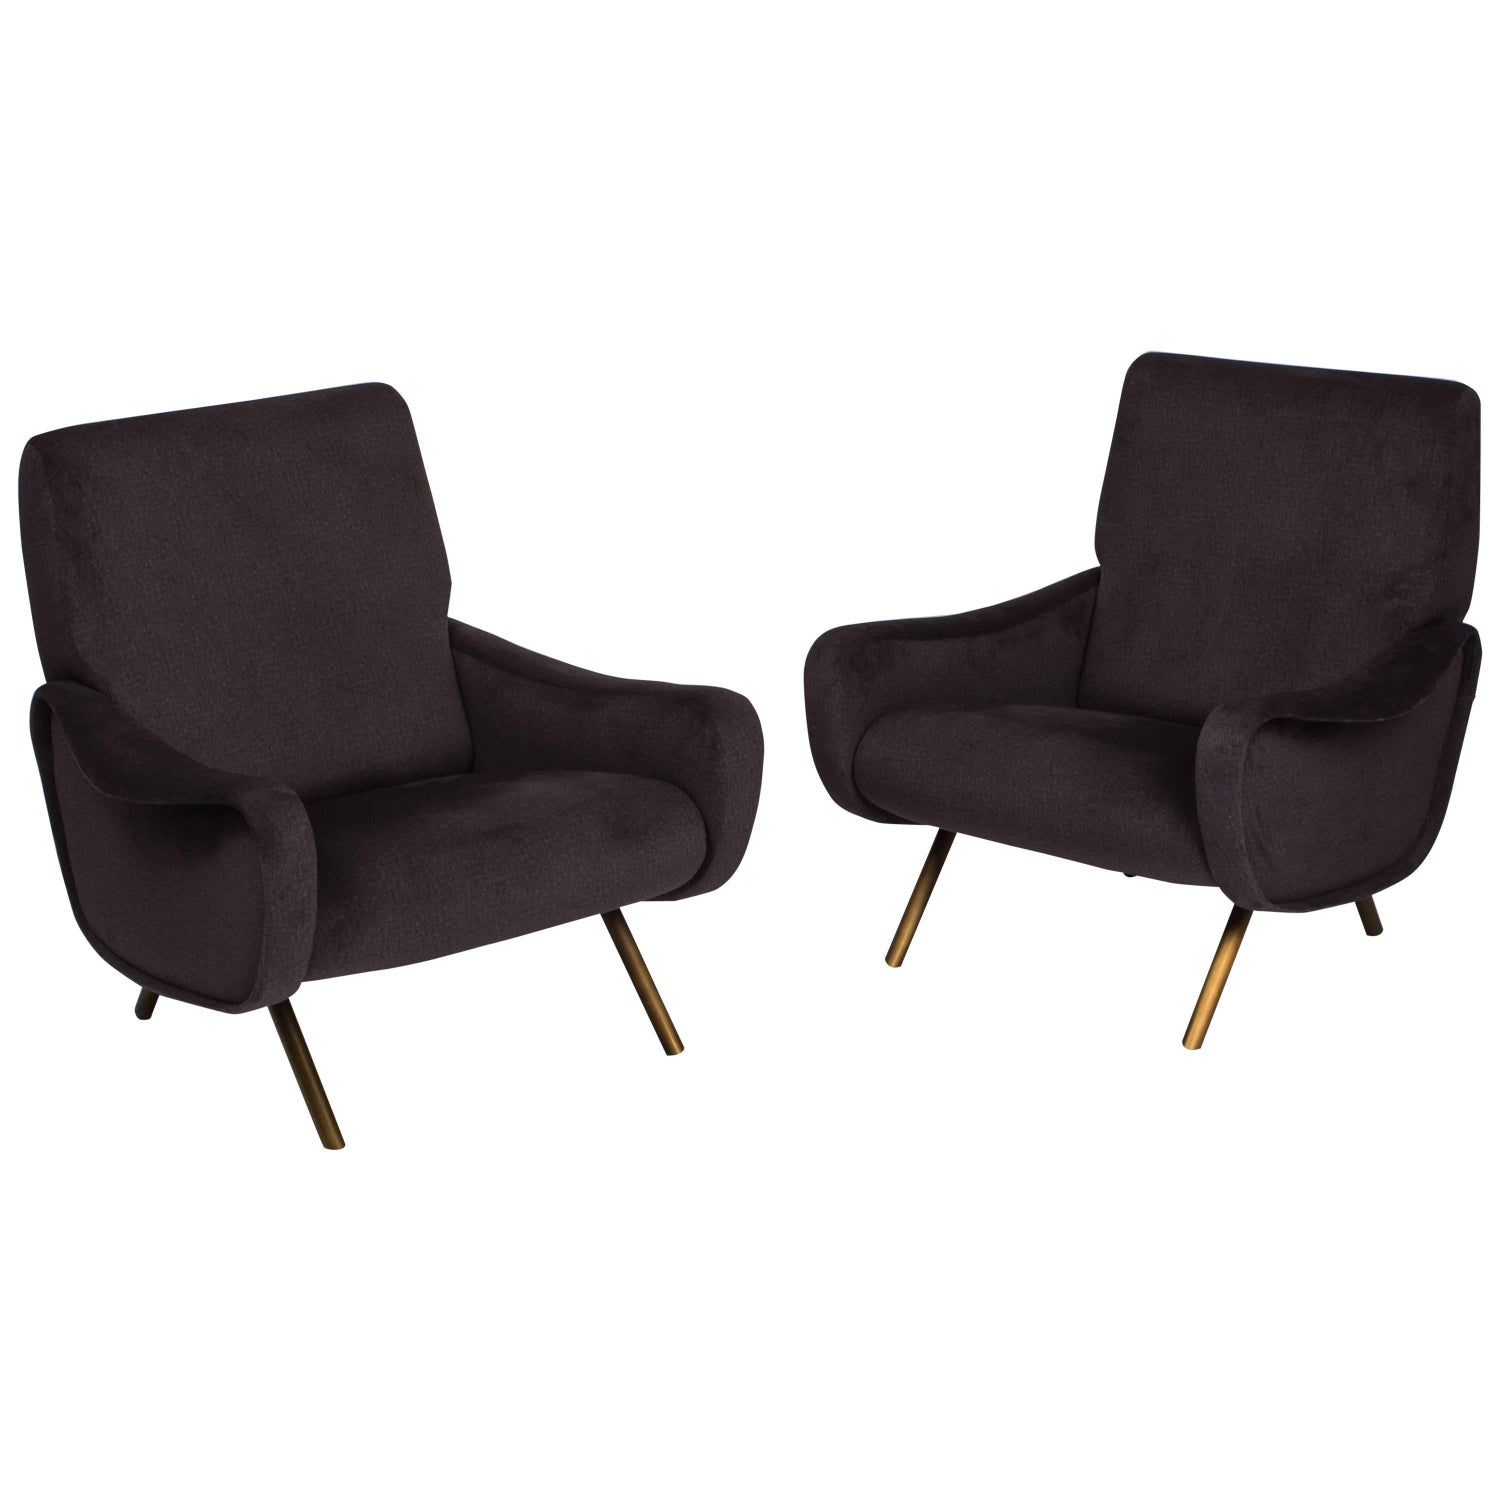 Marco Zanuso Furniture Chairs Sofas Tables & More 128 For